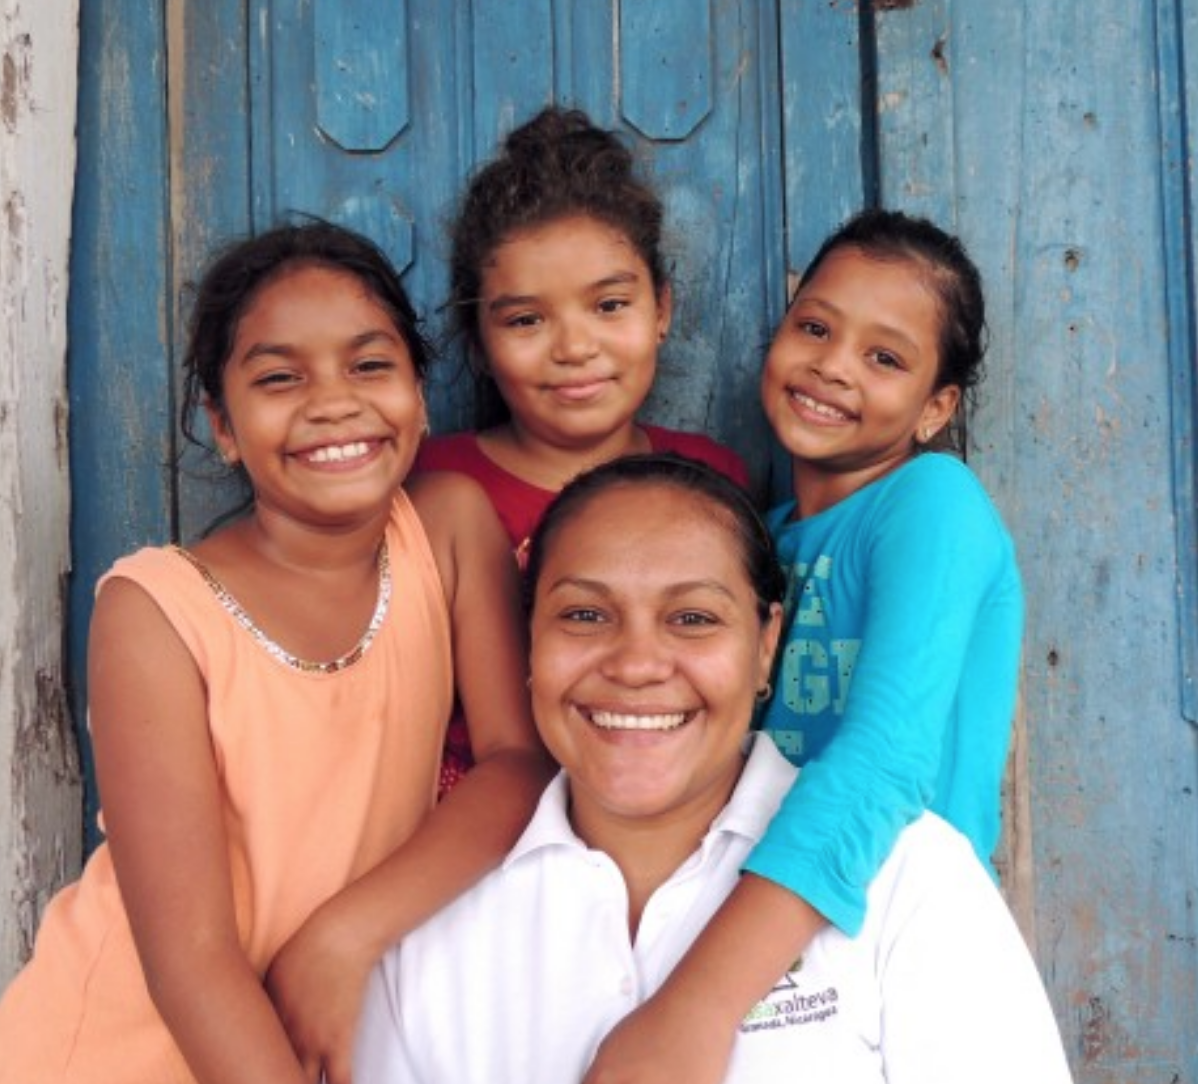 Sponsor a child - If you'd like to make a specific donation to sponsor a child in Casa Xalteva's children's program, below are some areas that you could show support: